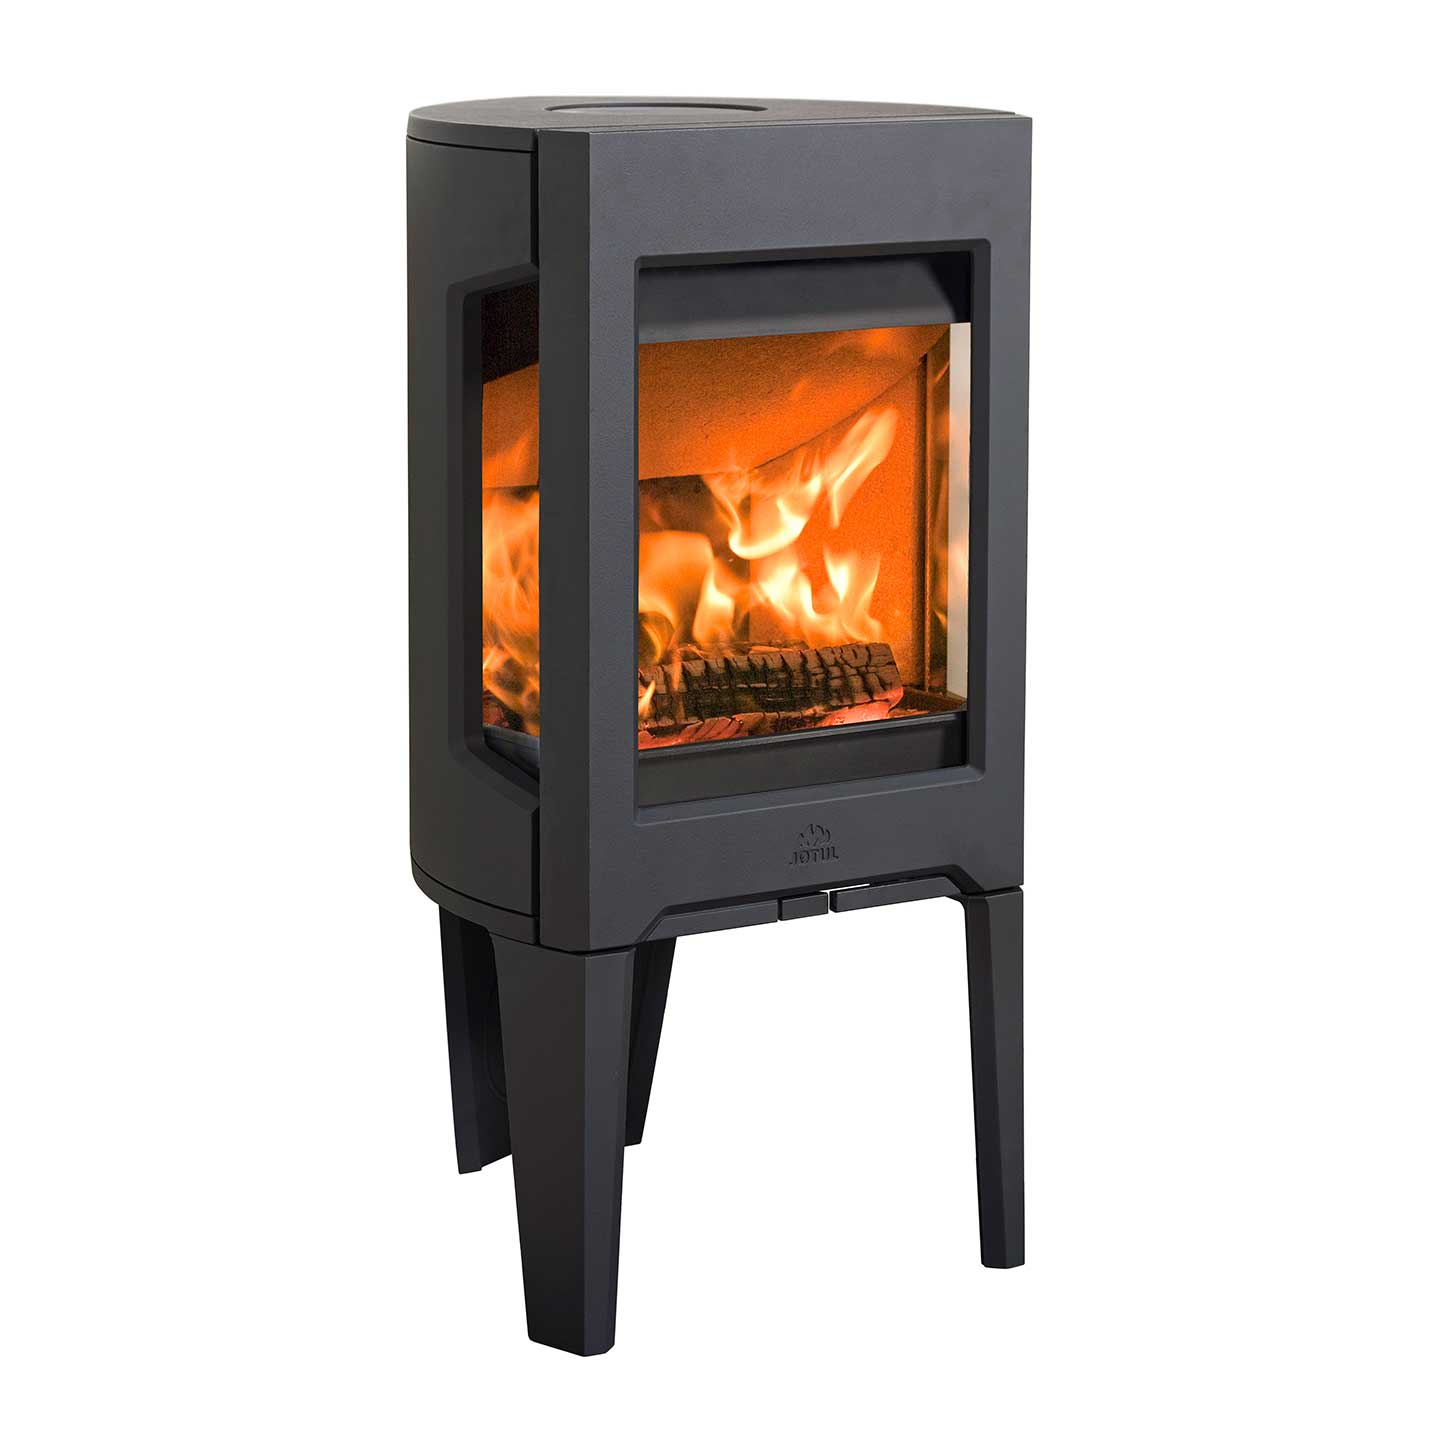 Jotul F163 Wood Burning Stove The Stove Site Approved